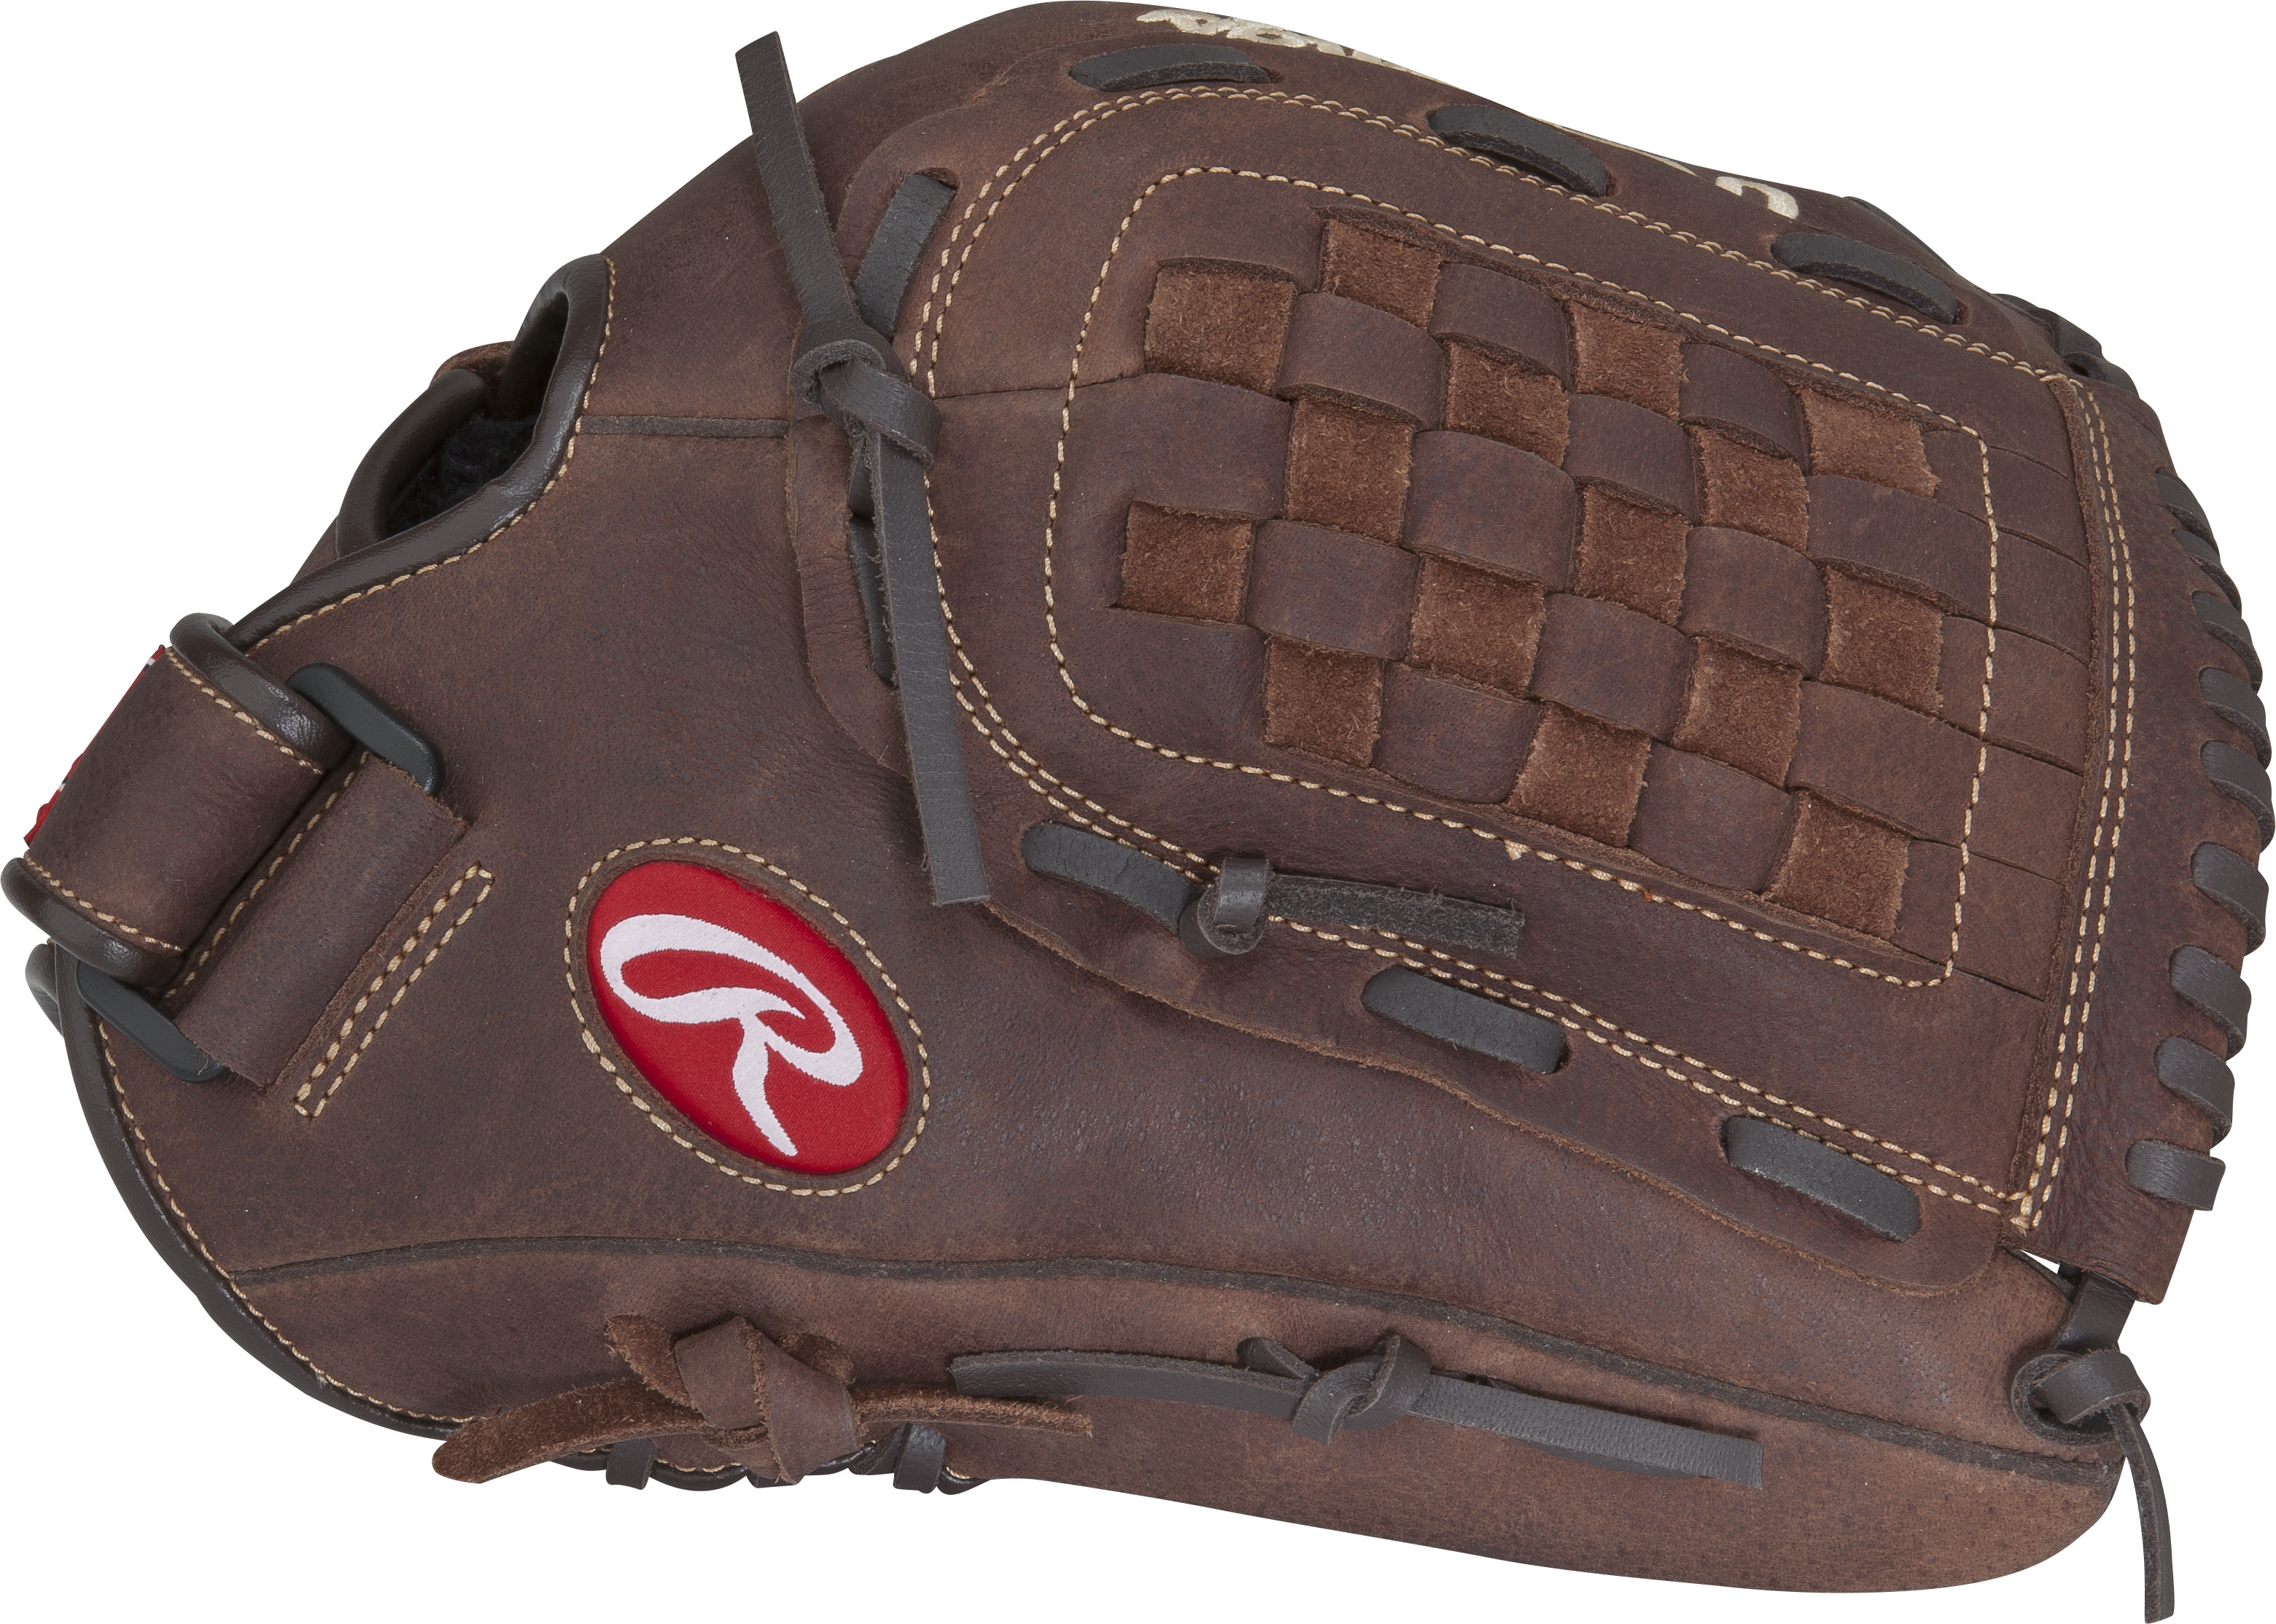 http://www.bestbatdeals.com/images/gloves/rawlings/P125BFL_thumb.jpg